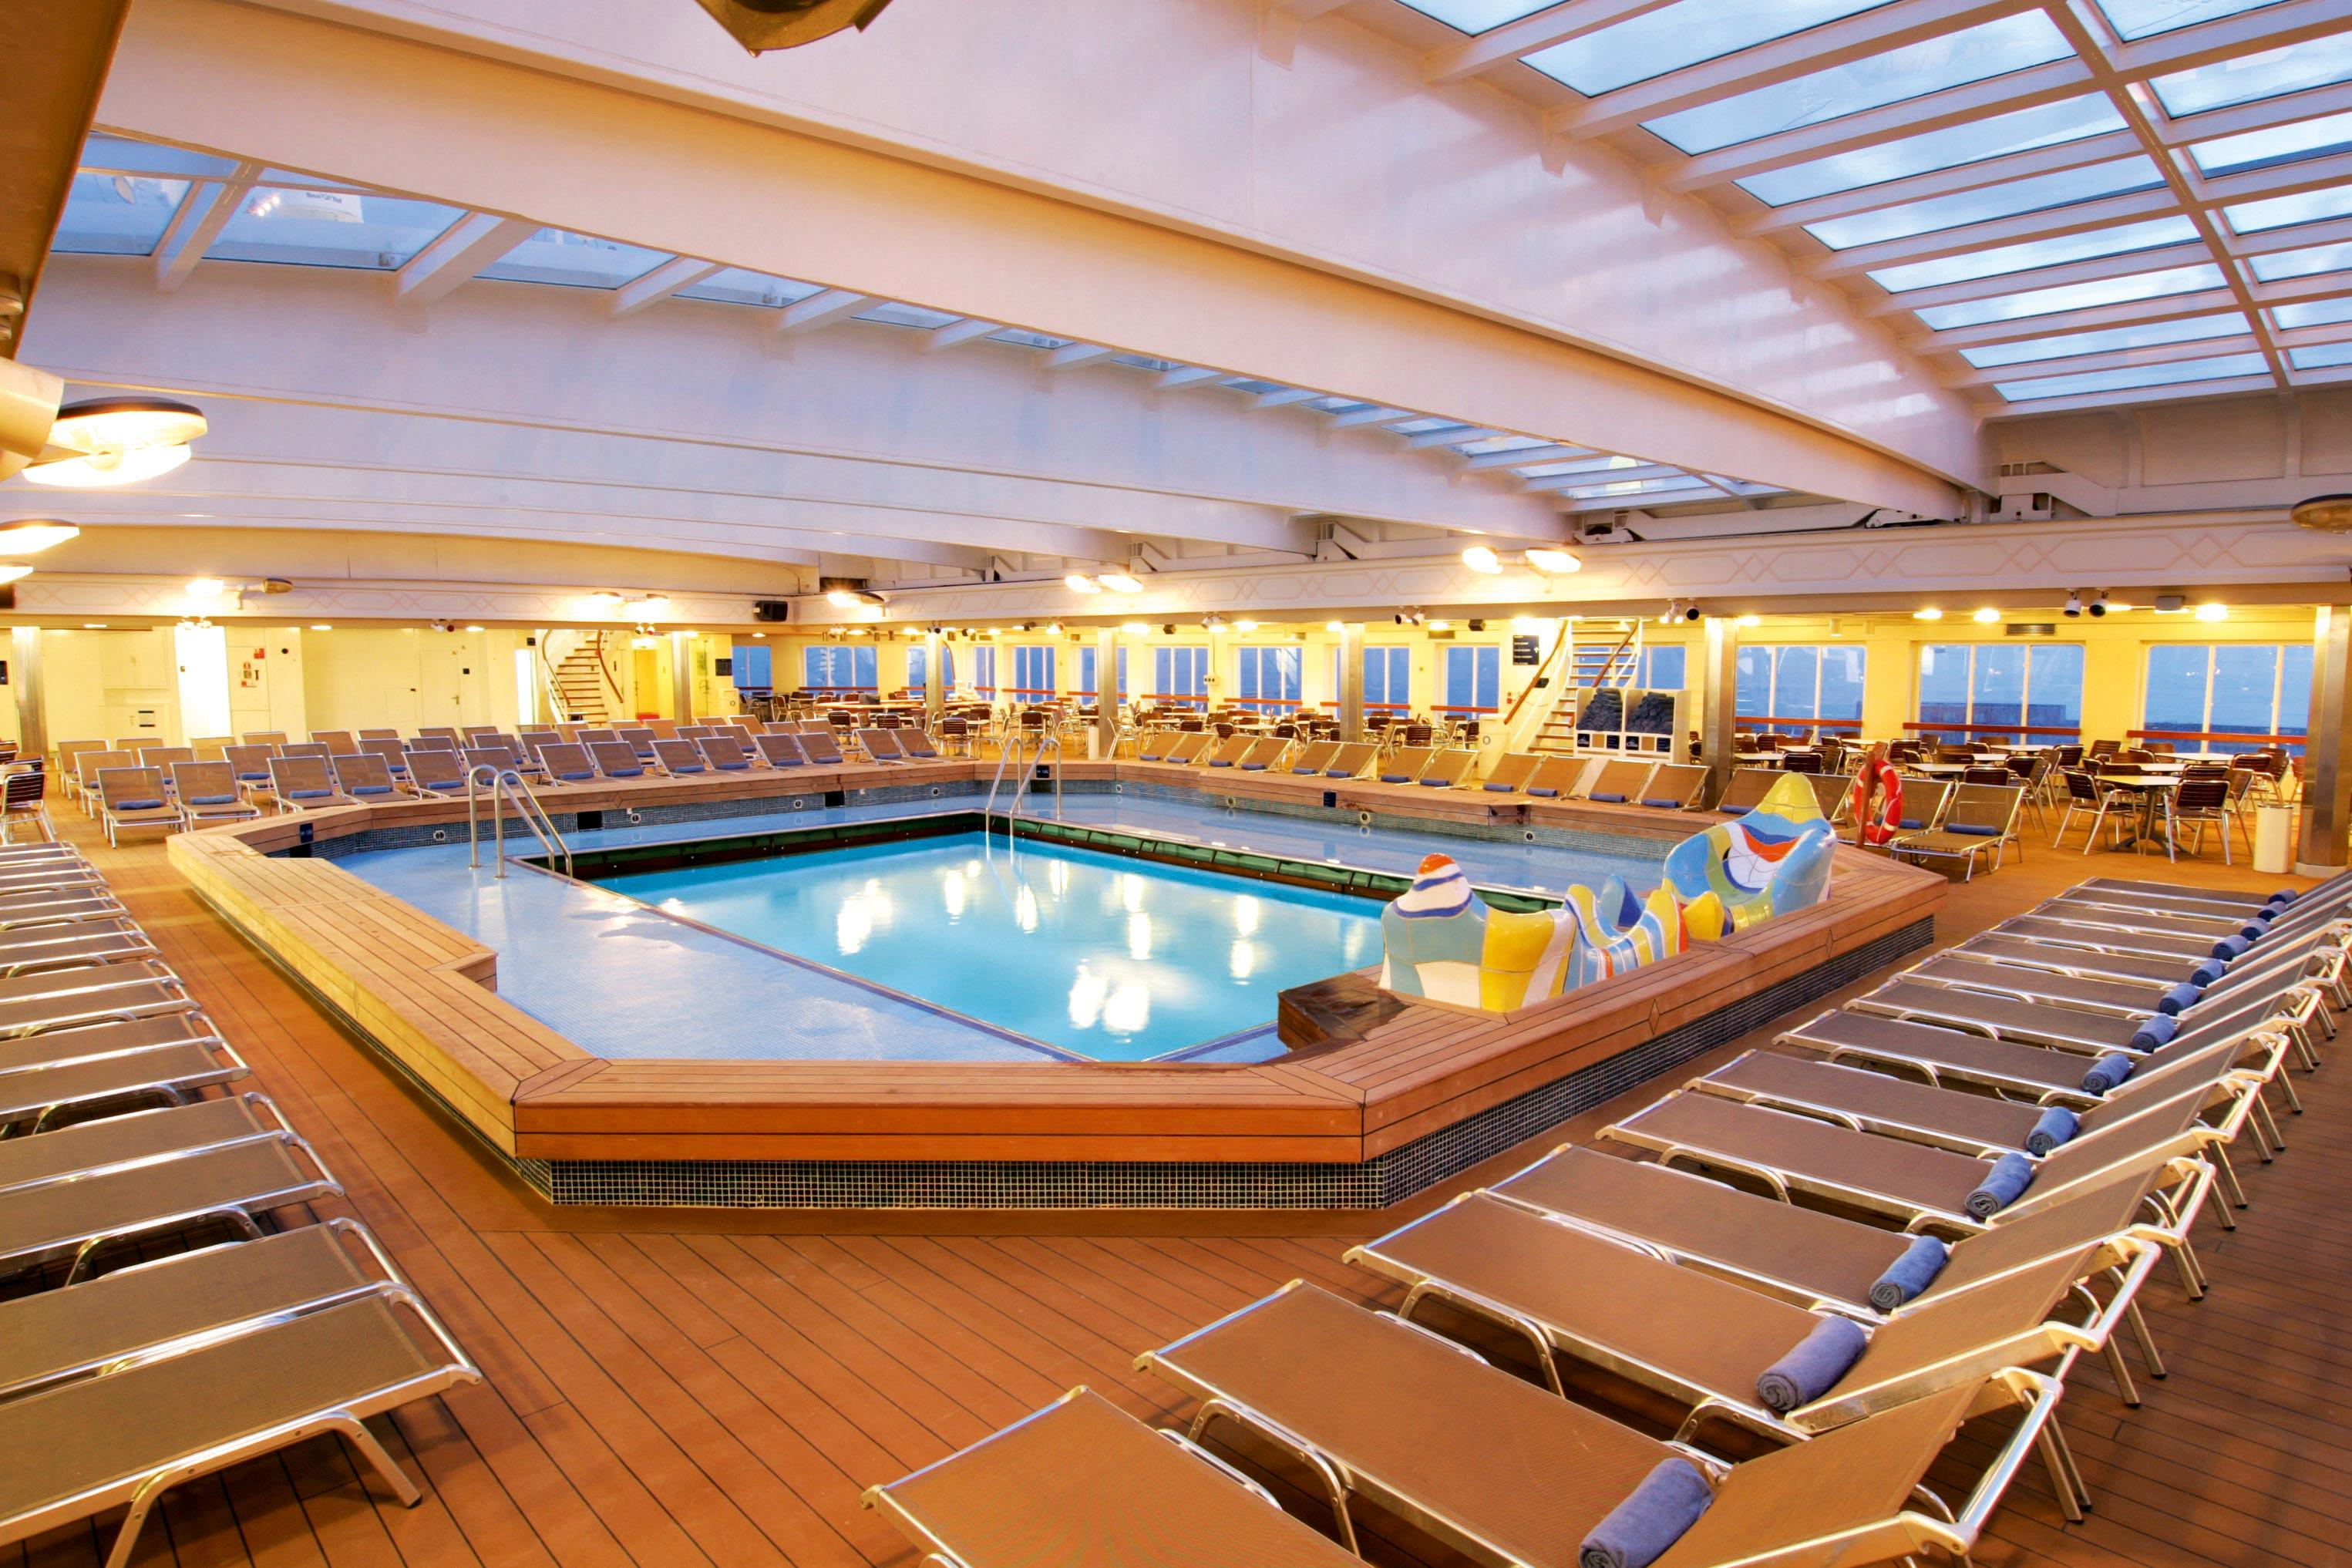 The Indoor Pool On The Thomson Dream Thomson Cruises Pinterest - Pictures of thomson dream cruise ship